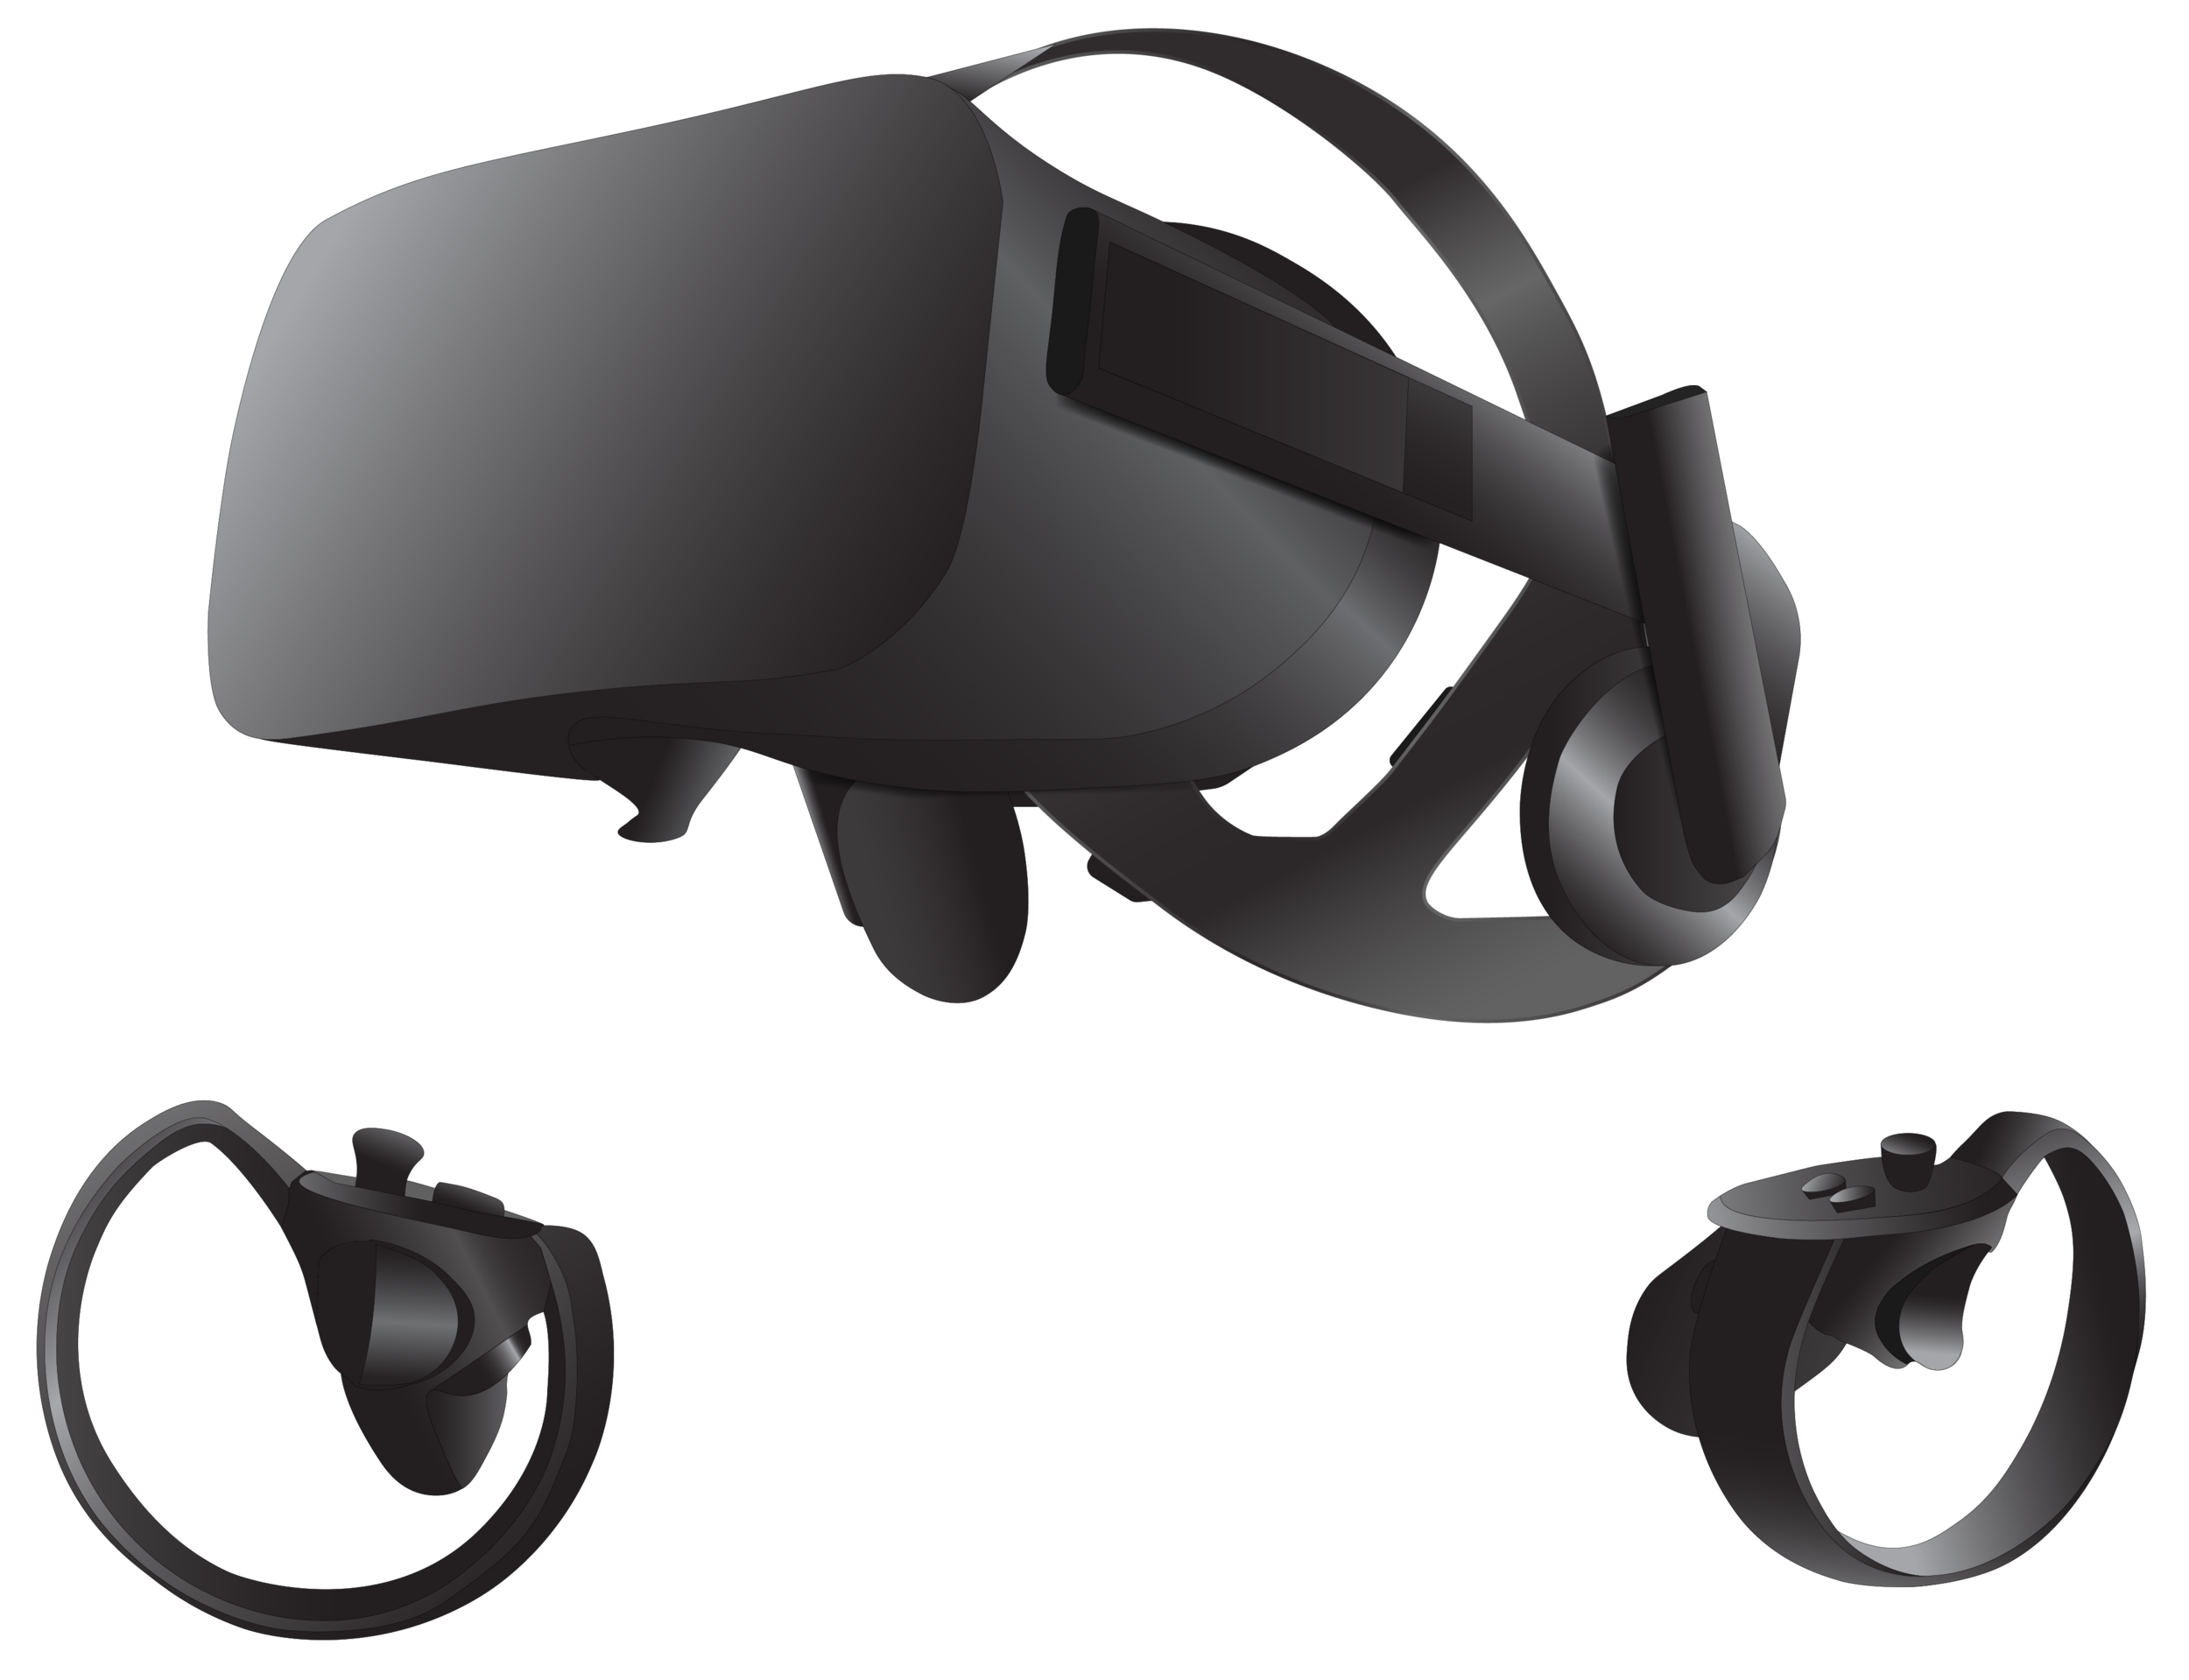 OculusRift_Header_Illustration_by_Brandi_Madar.png